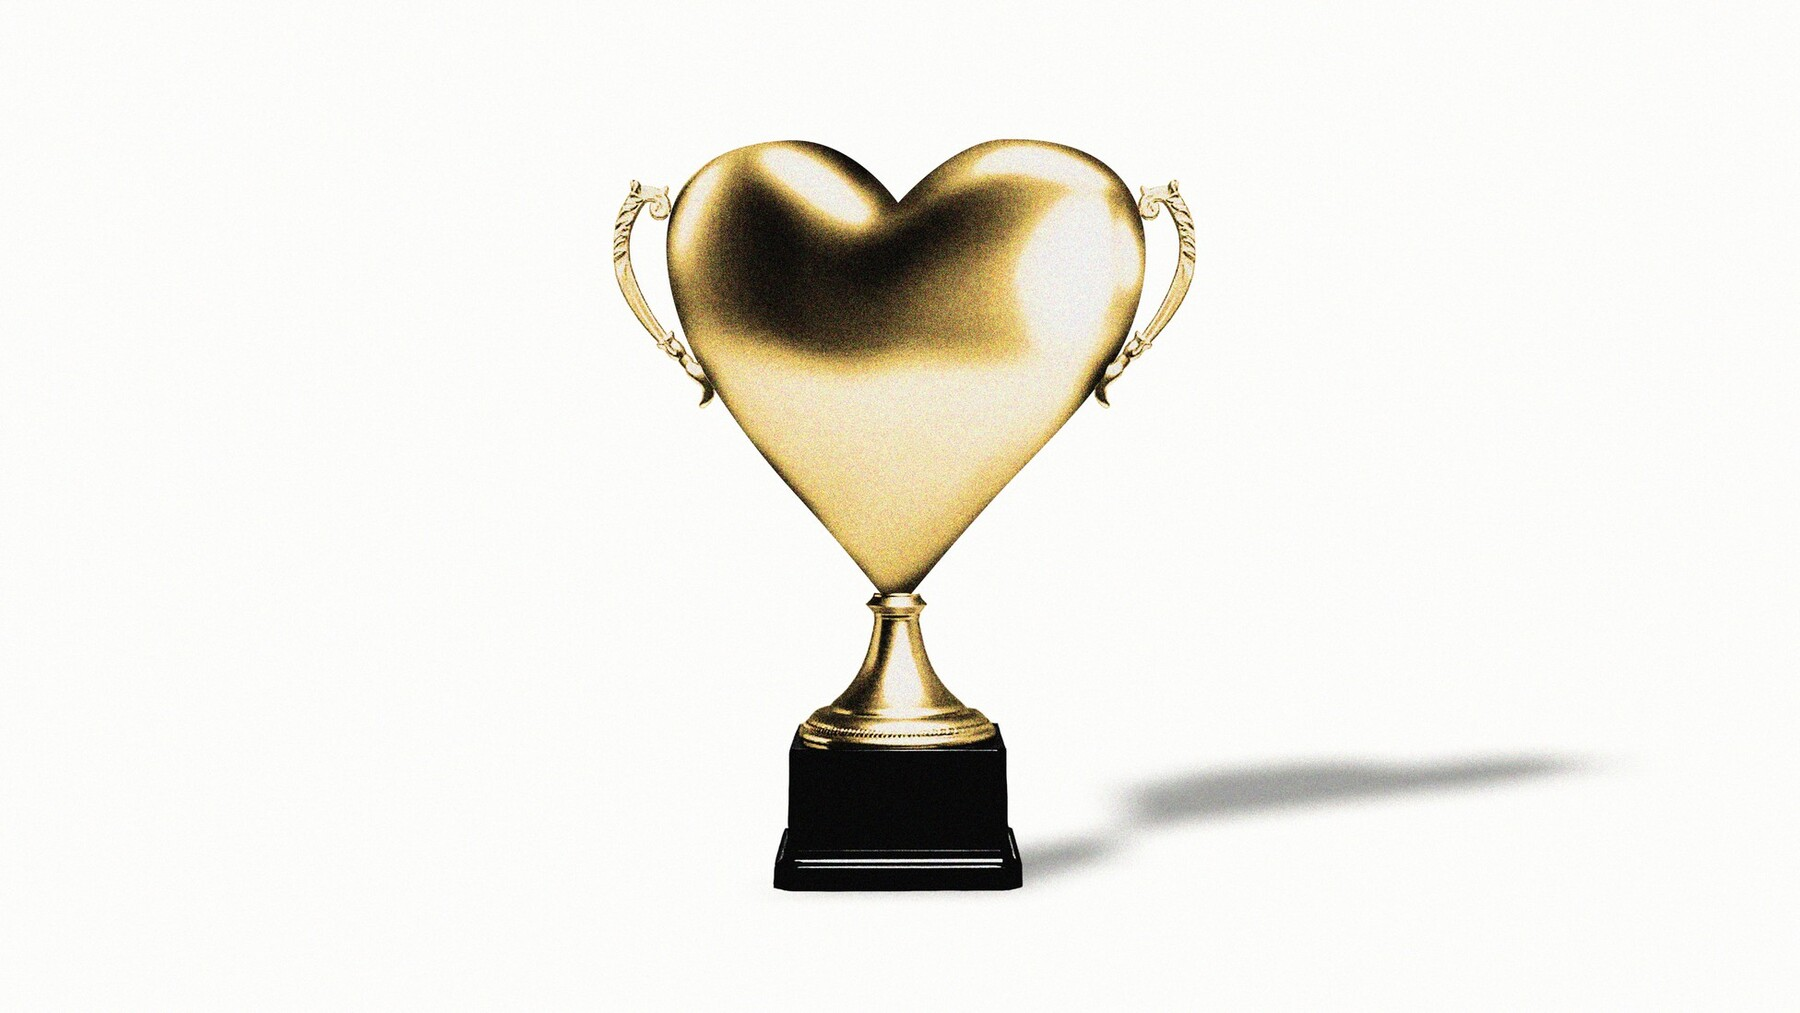 graphic image of golden heart-shaped trophy by Adam Maida / The Atlantic